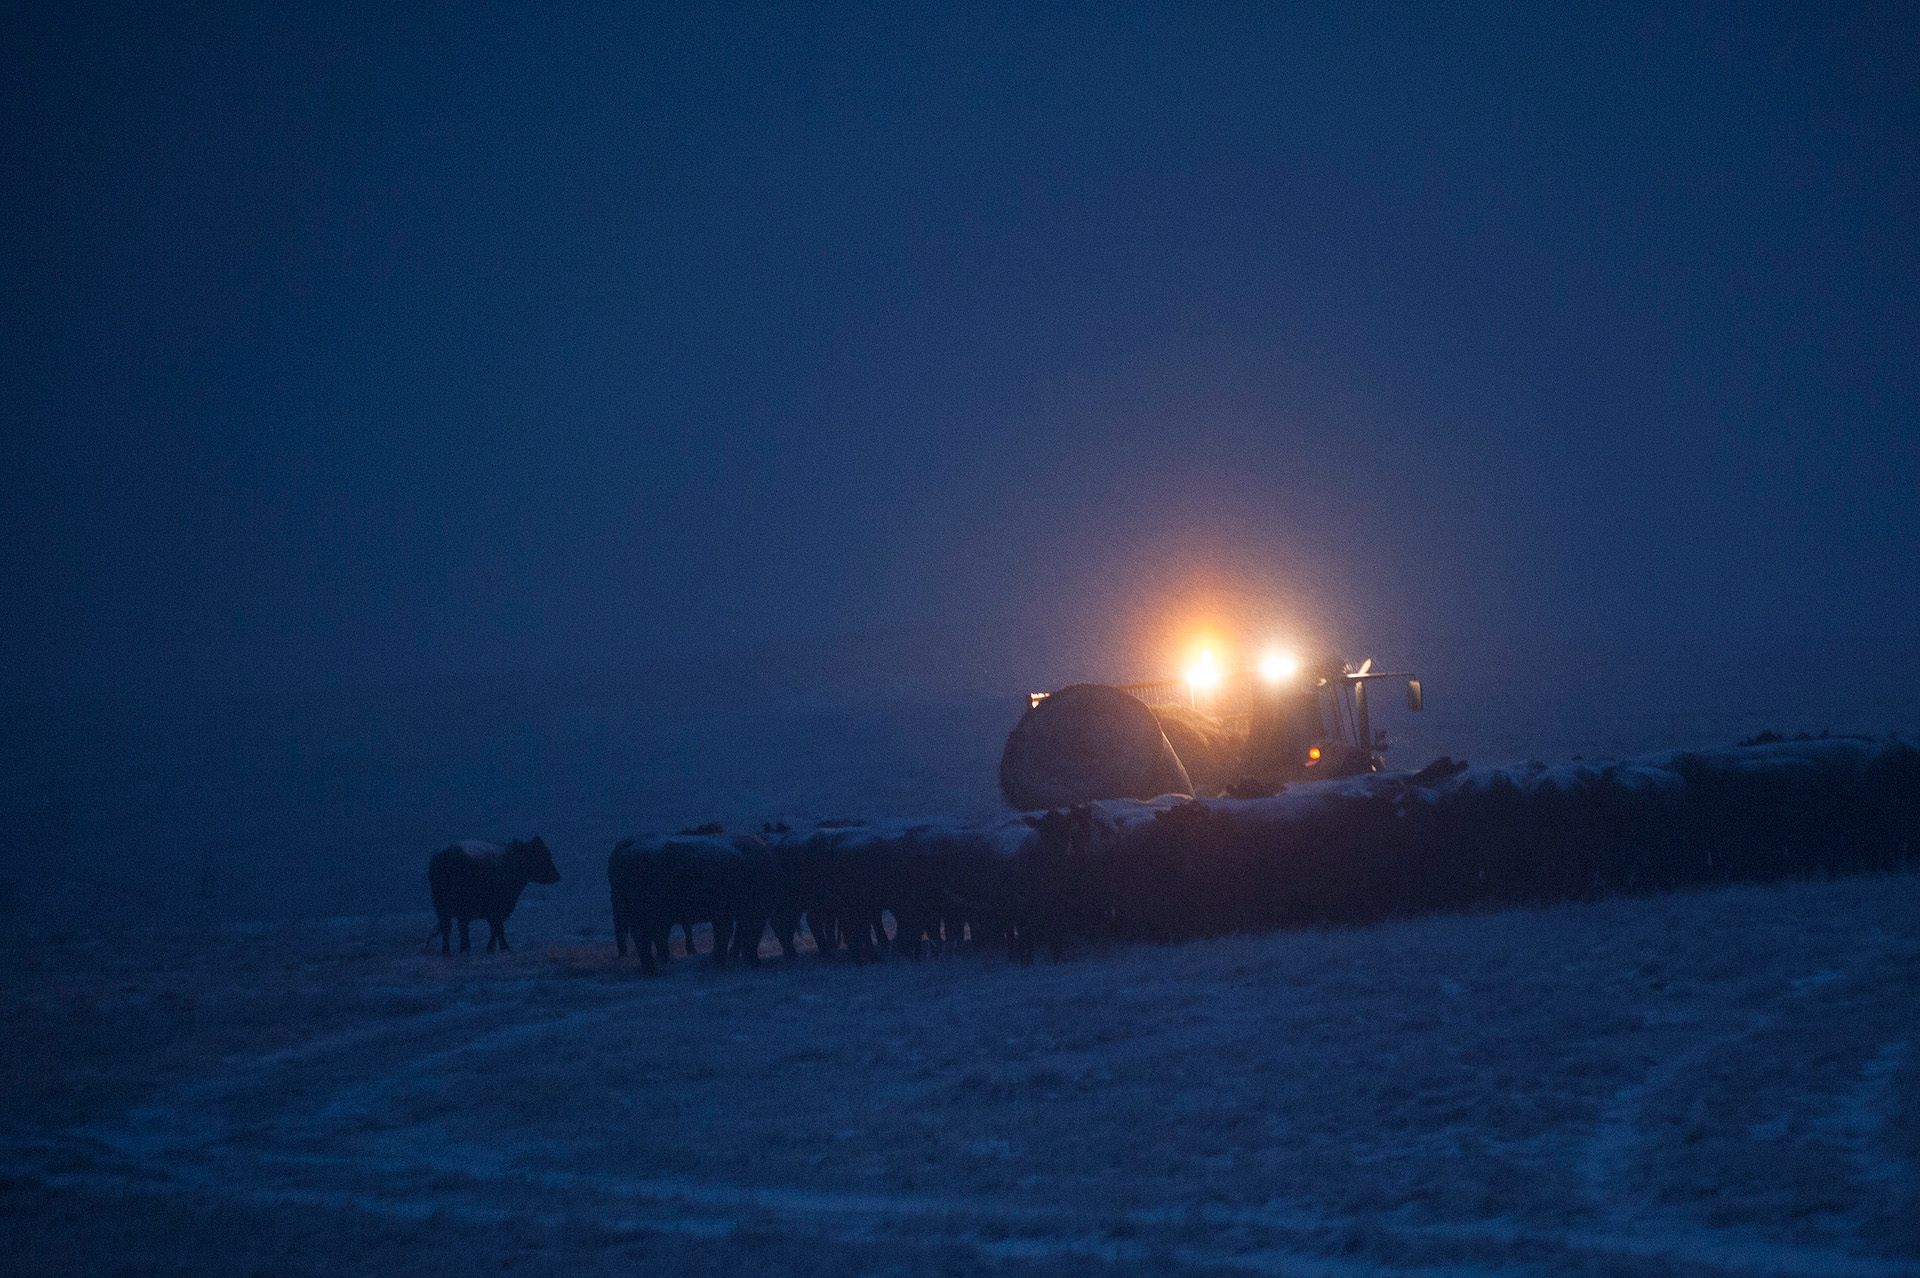 Before morning breaks, a tractor drops round bales of hay at a rendezvous point on the Thackeray Ranch, the summer range for a herd of 400 cows that will be moved 13 miles to the Northern Agricultural Research Center where they will graze, calve and be studied. The lead cow follows the slow-moving tractor, and the rest of the cows fall in line.